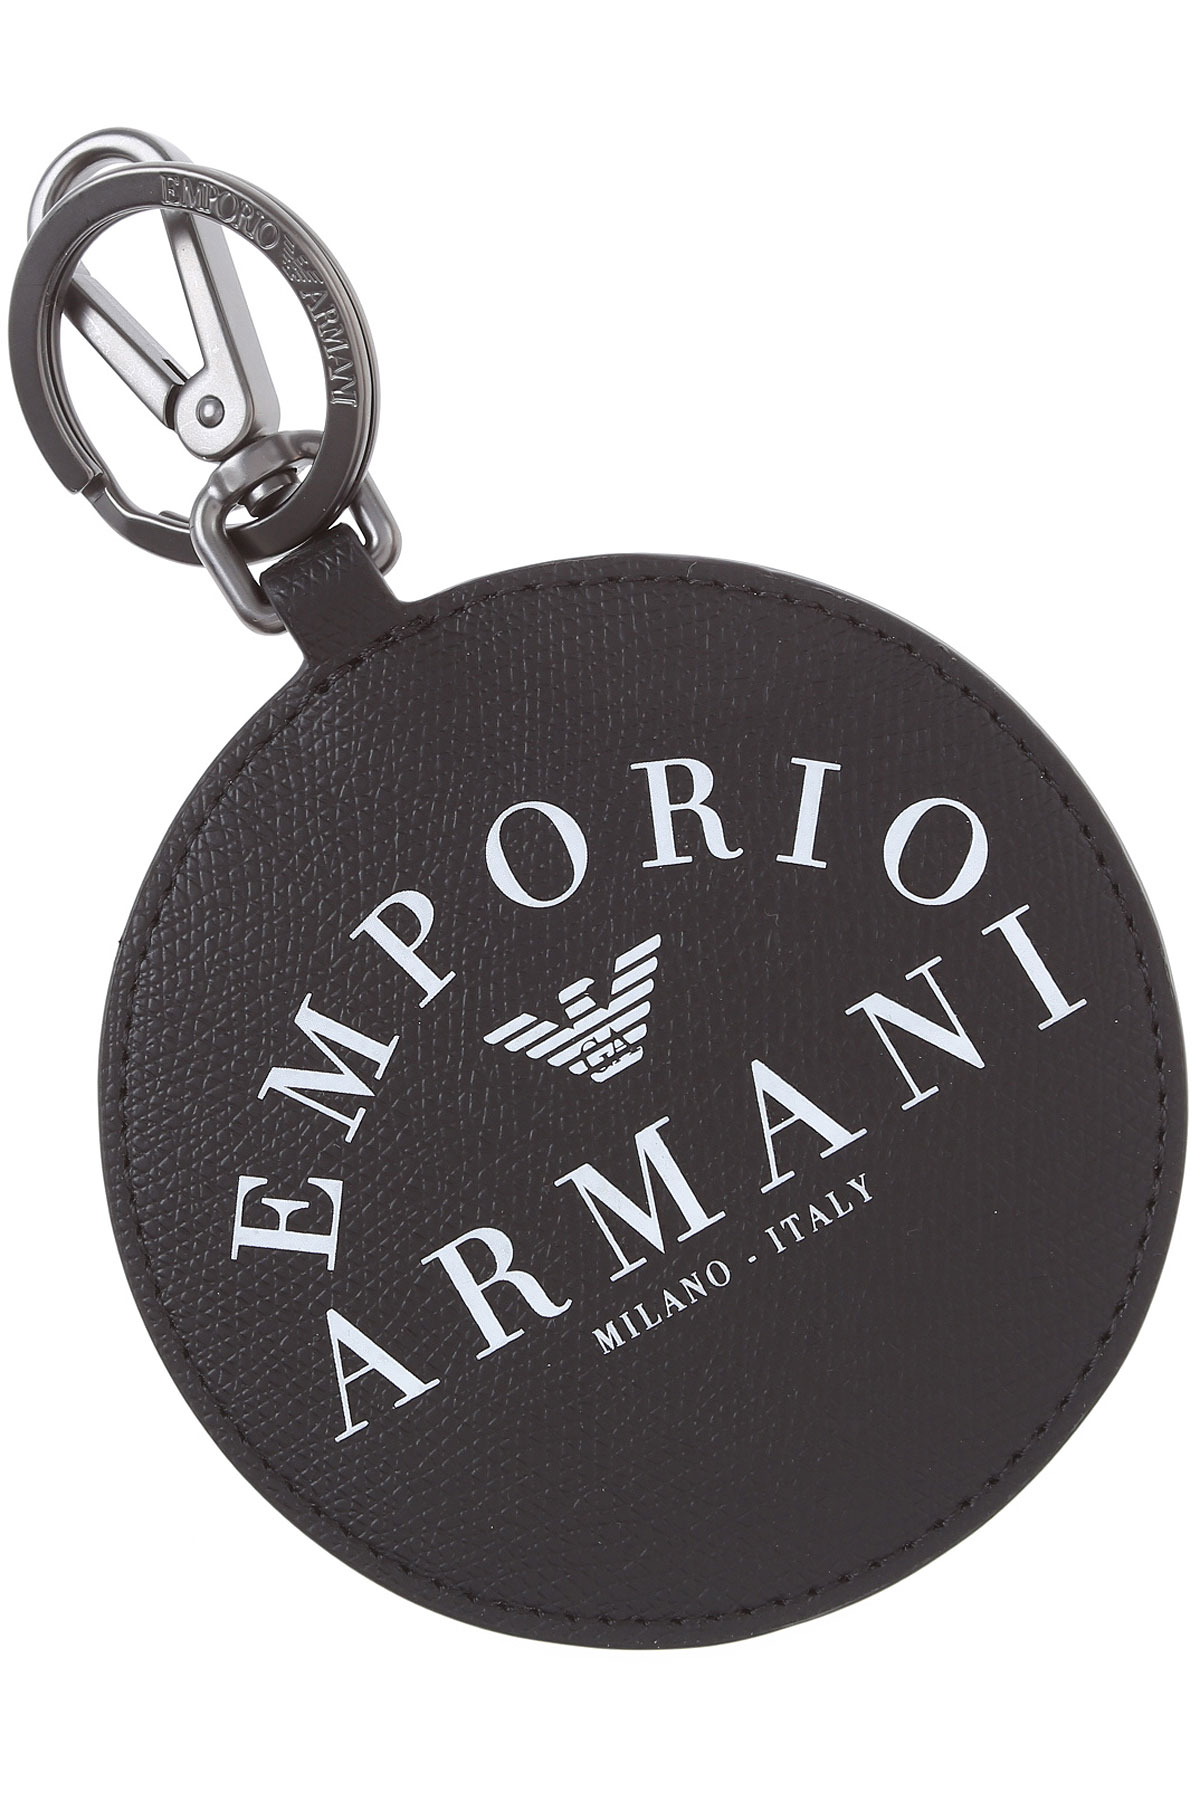 Emporio Armani Key Chain for Men, Key Ring, Black, Eco Leather, 2019